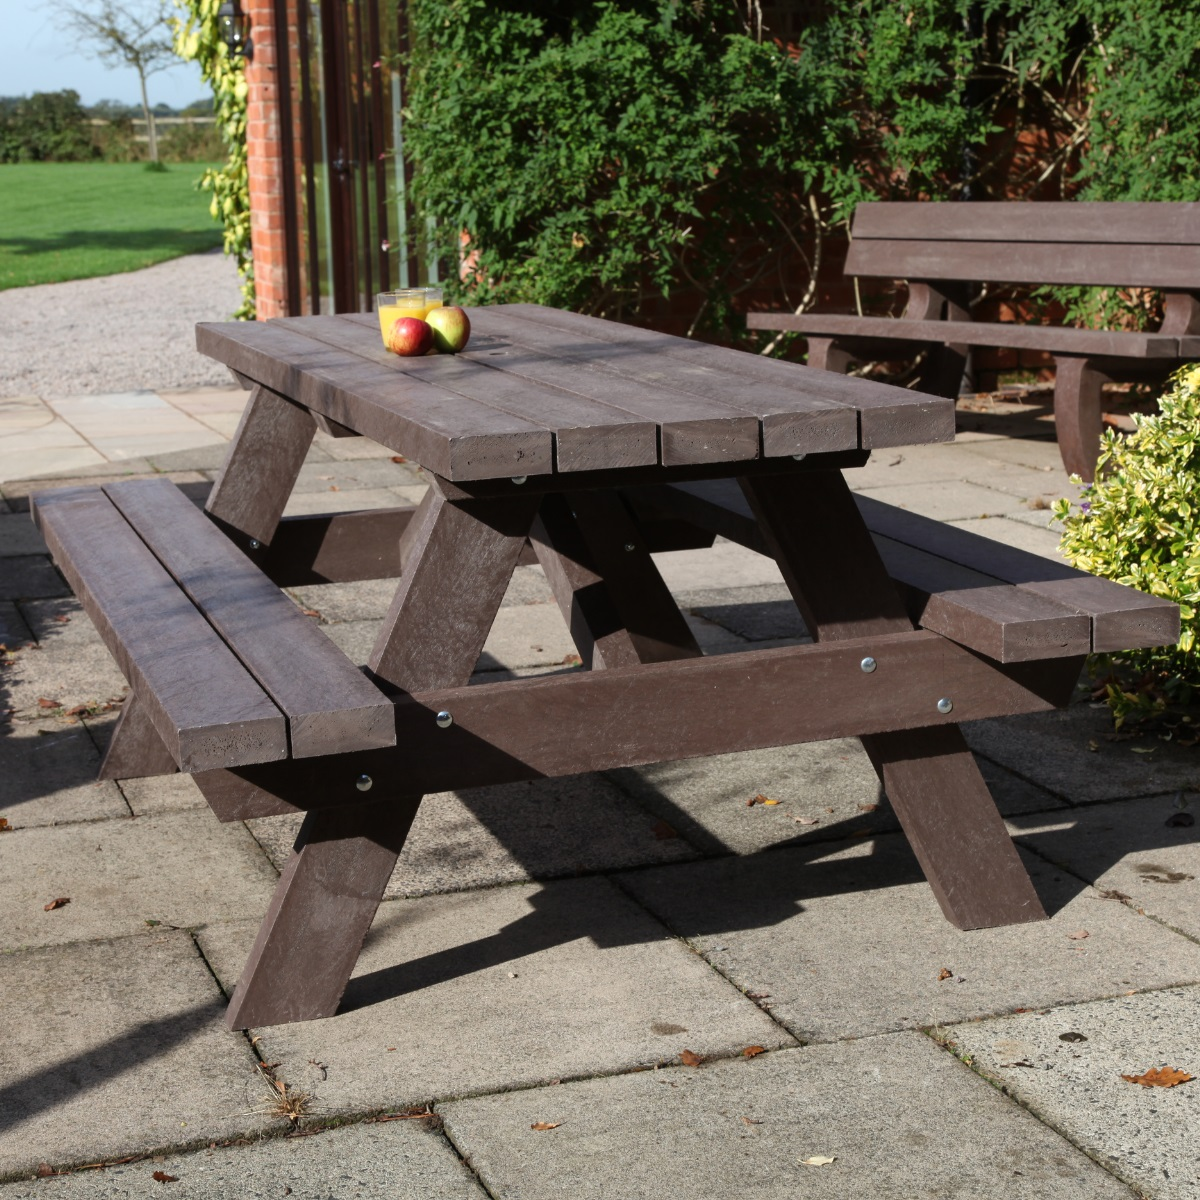 A brown recycled plastic A frame picnic table on a patio